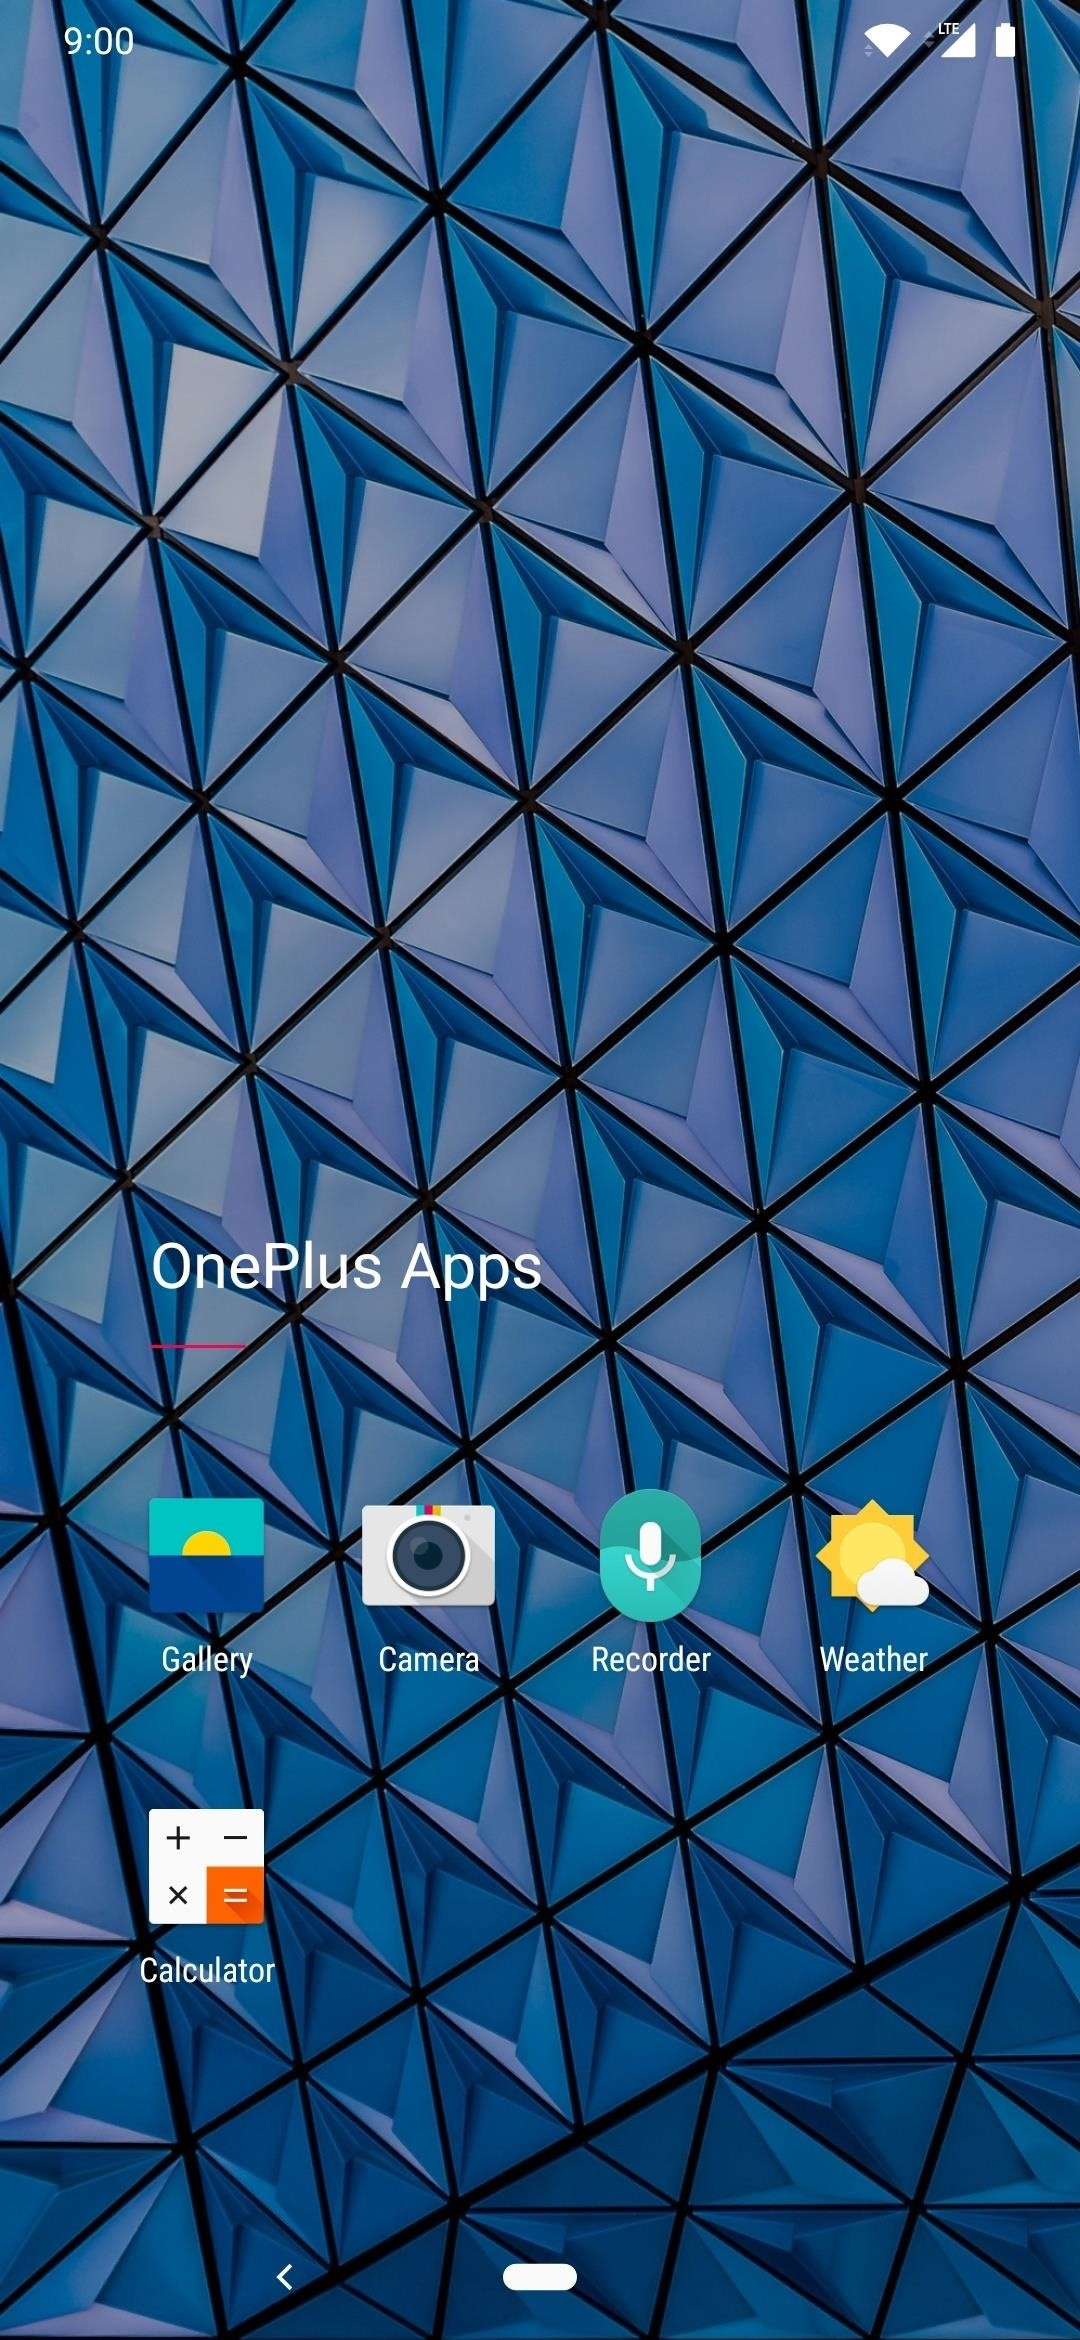 How to Turn Almost Any Android Phone into a OnePlus Device